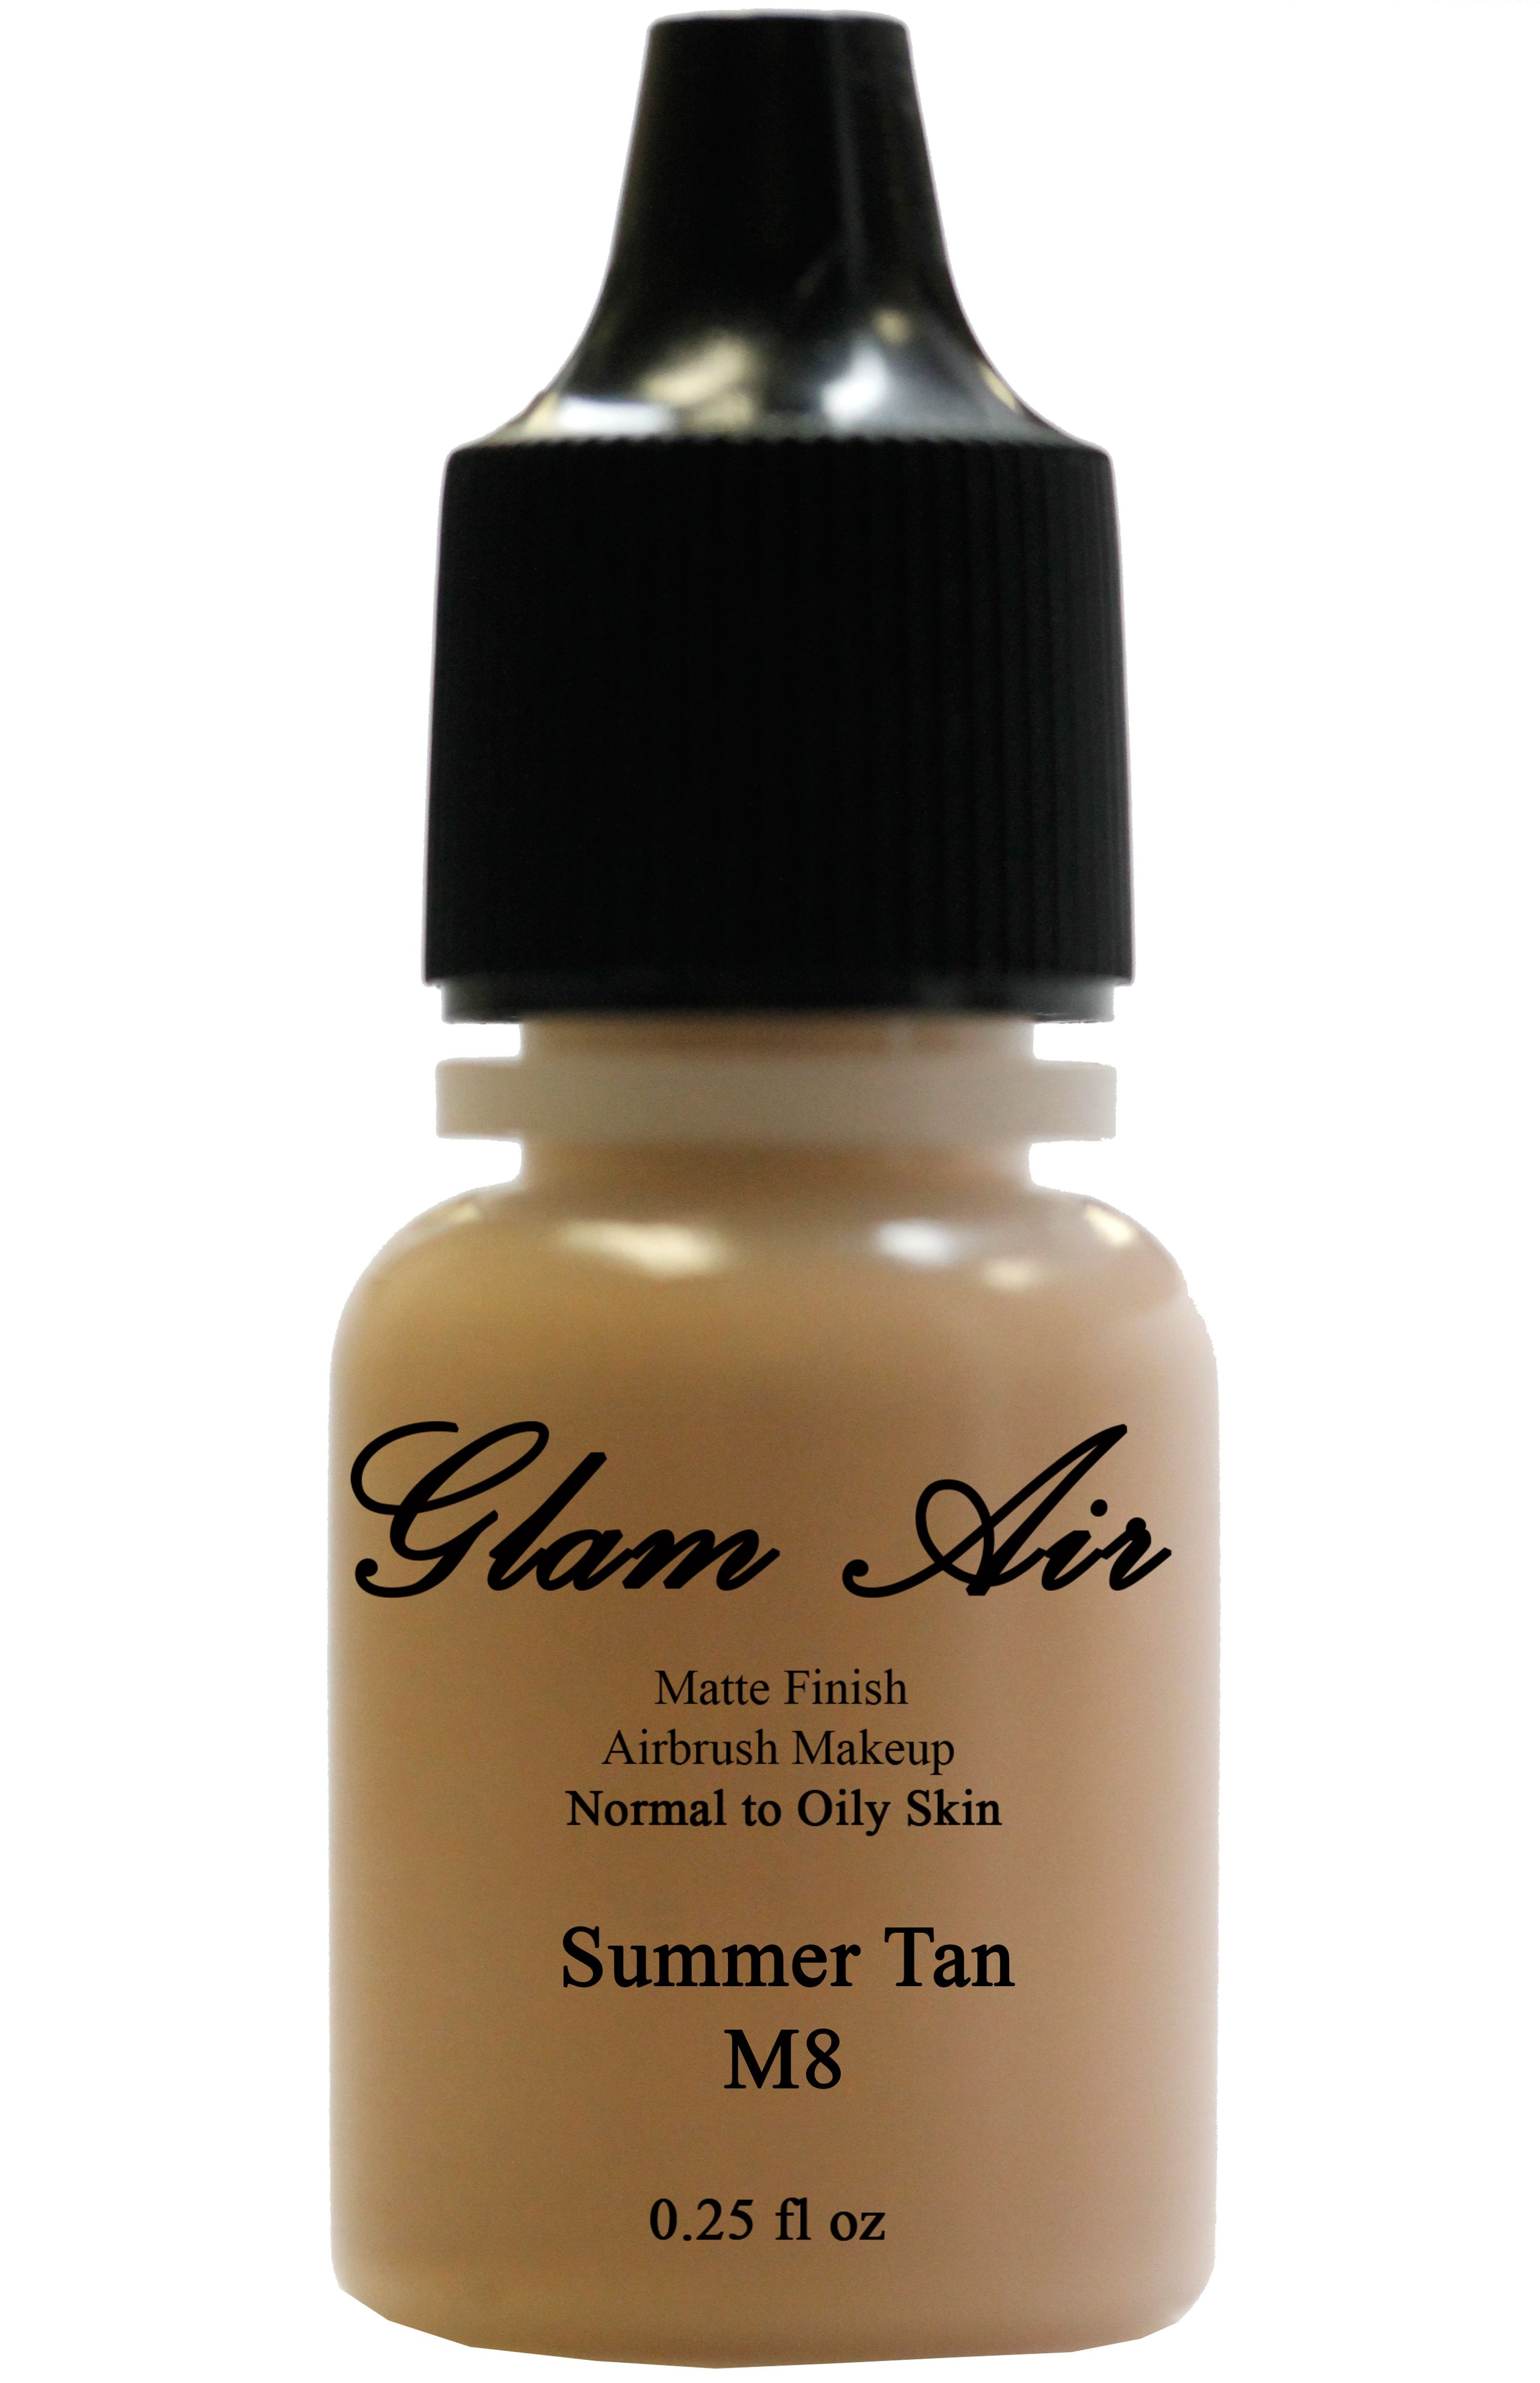 M8 Summer Tan Water Based Airbrush Matte Foundation Is Part Of Our Medium Series If Your S Airbrush Makeup Foundation Airbrush Makeup Water Based Foundation